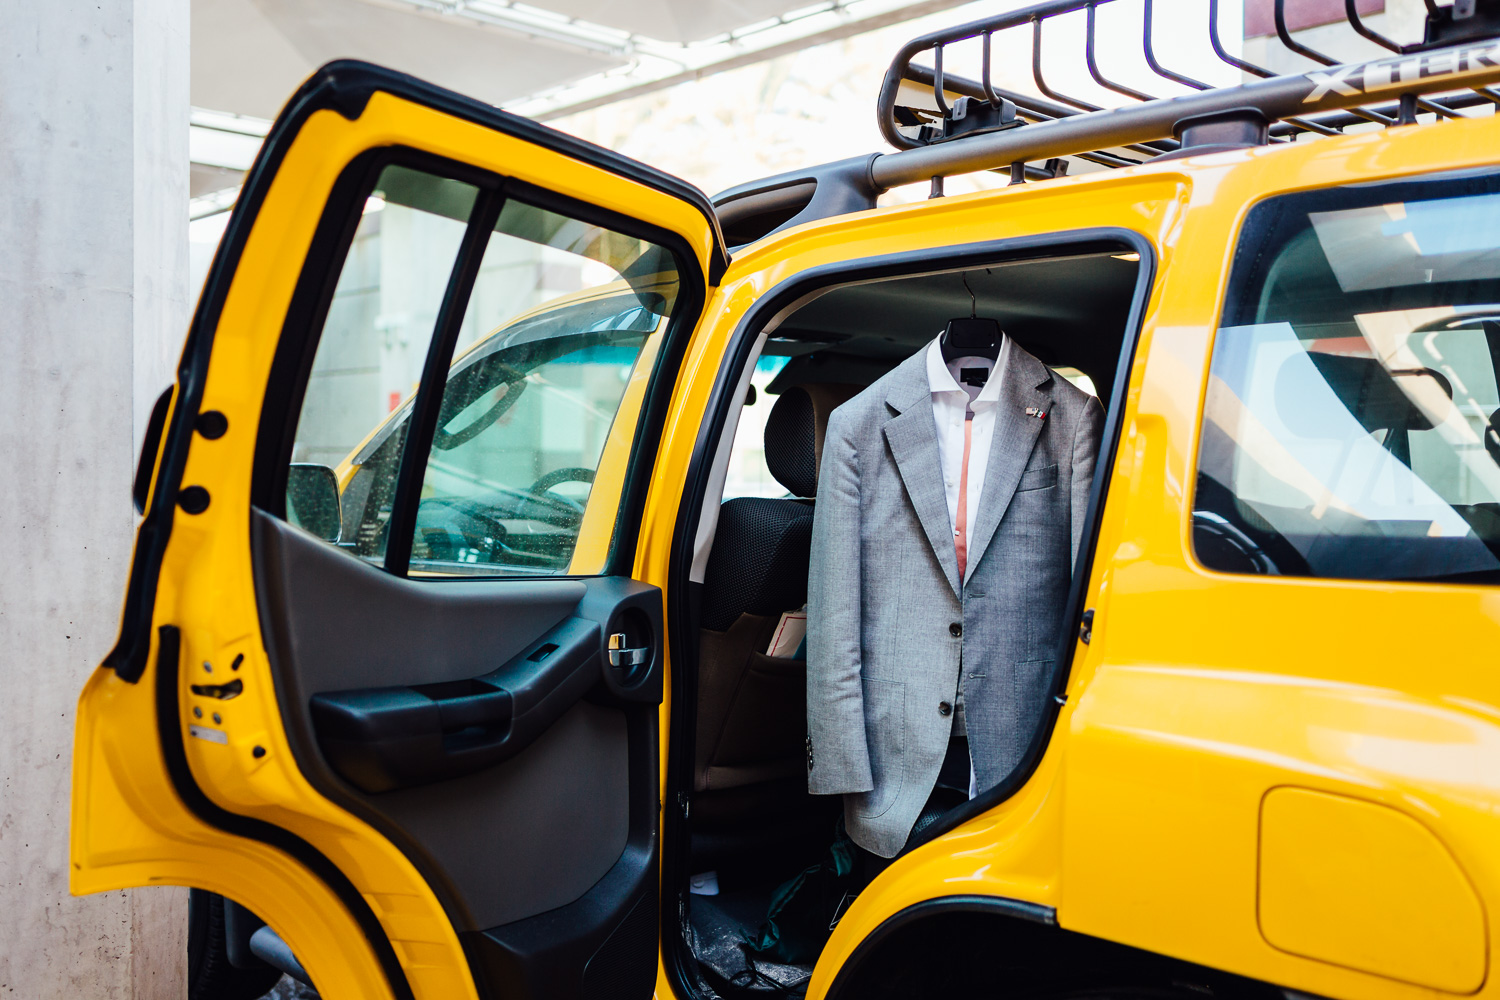 Yellow-Clothing-Car-Durazo-Photography-Project-Travel-Street.jpg